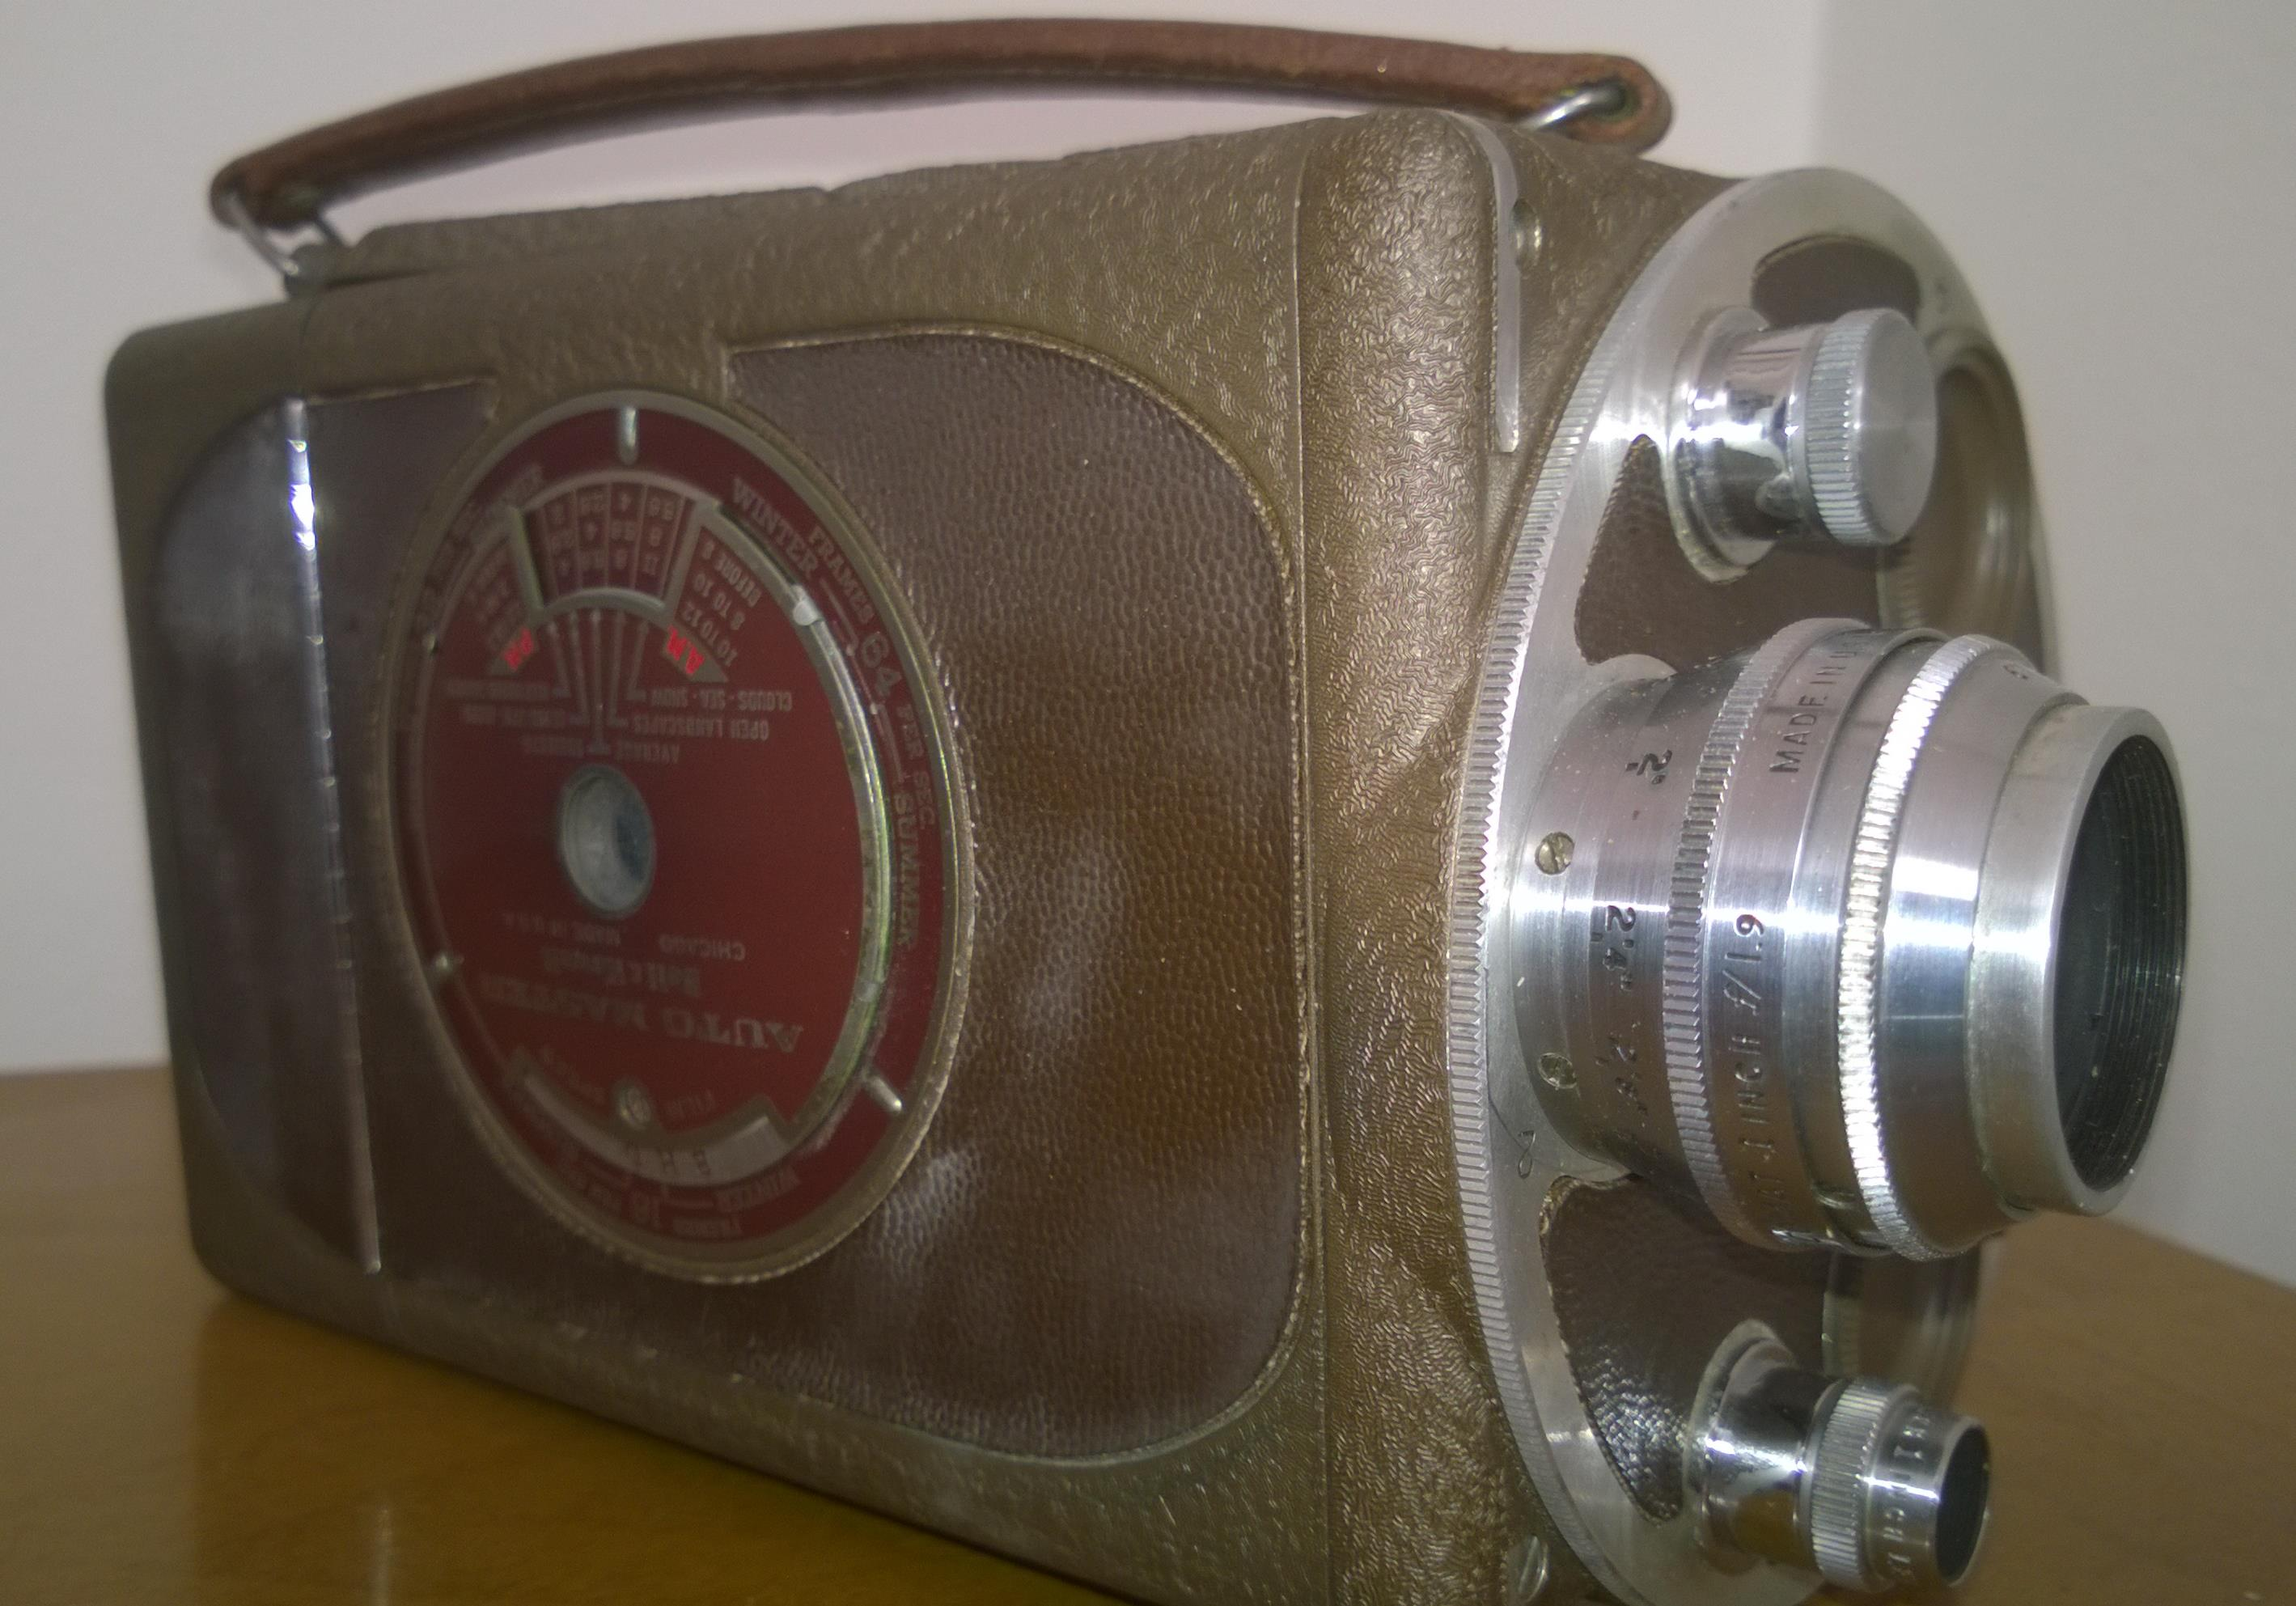 16 mm Bell & Howell Movie Camera (Auto Master)